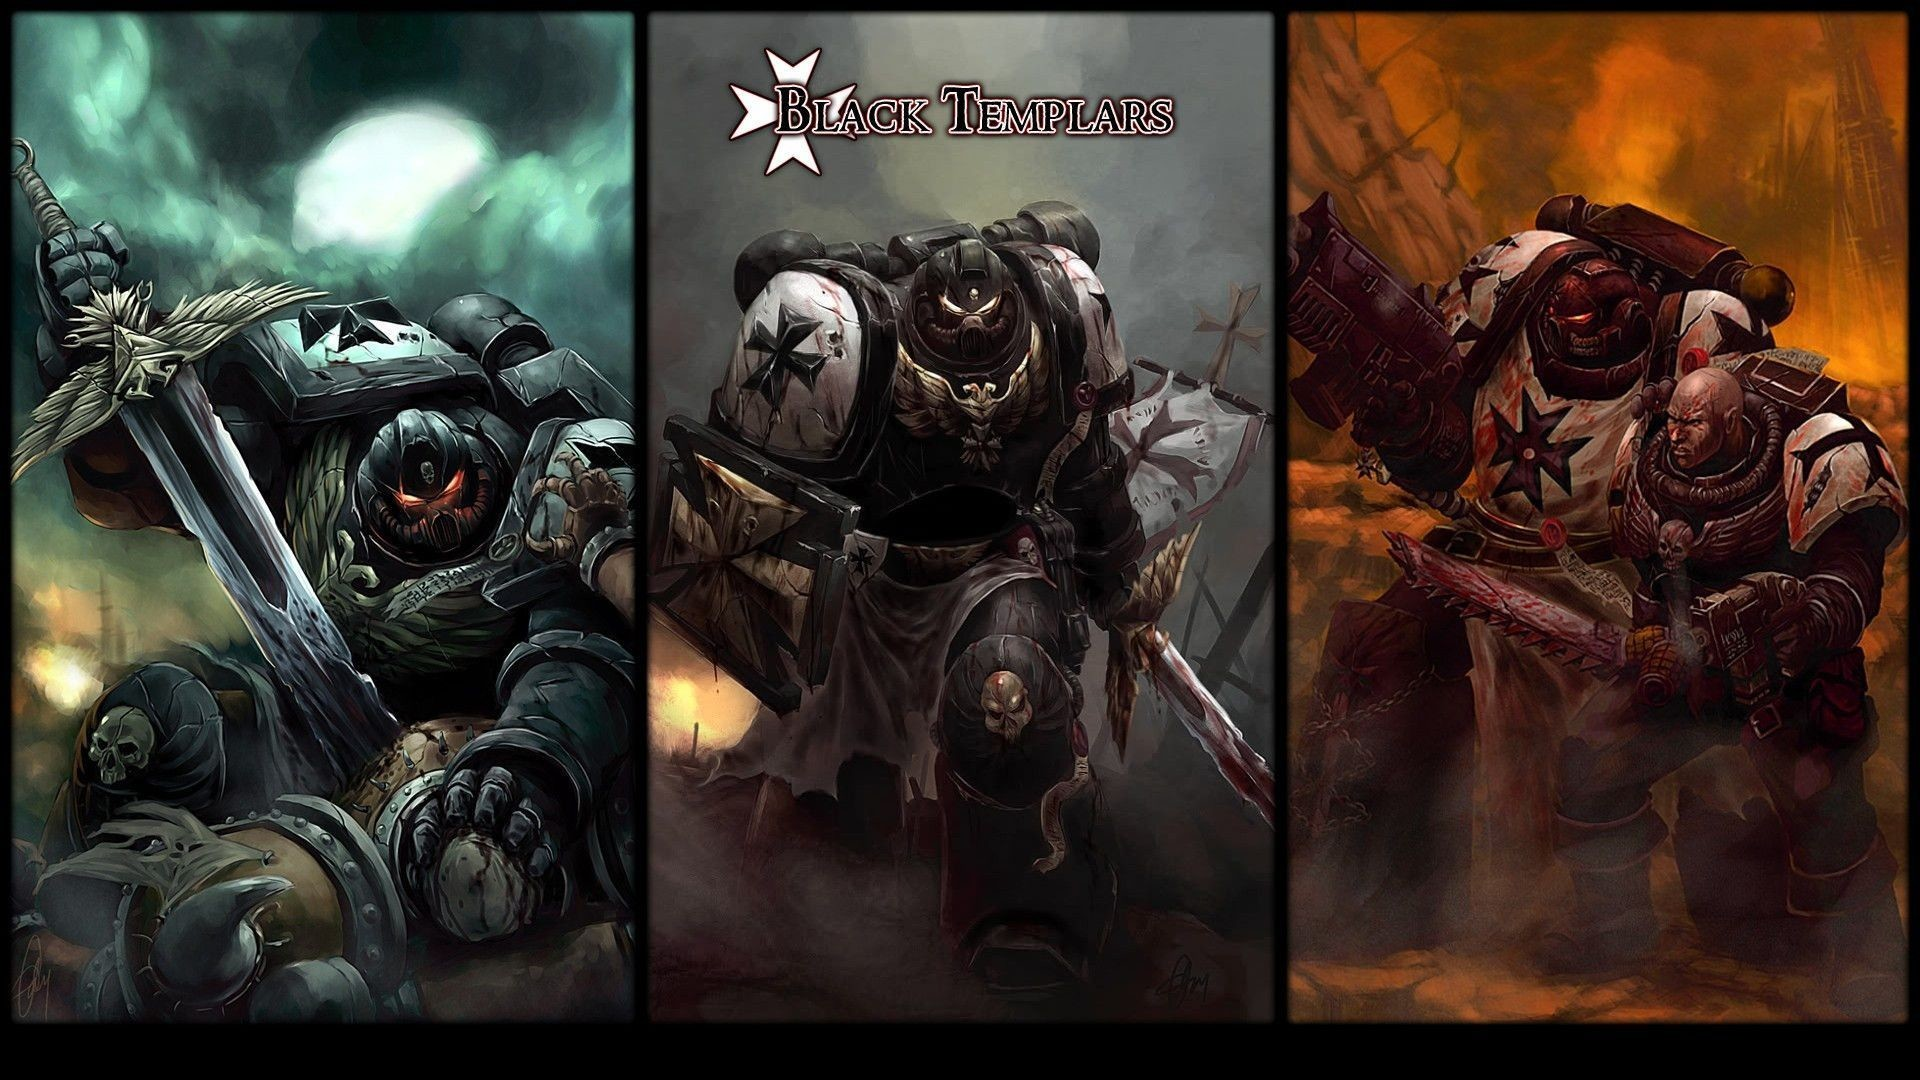 Space Marines Wallpaper Contribute to this   space marines, exosuits,  future warfare   Pinterest   Space marine, Warhammer 40k and Warhammer 40K